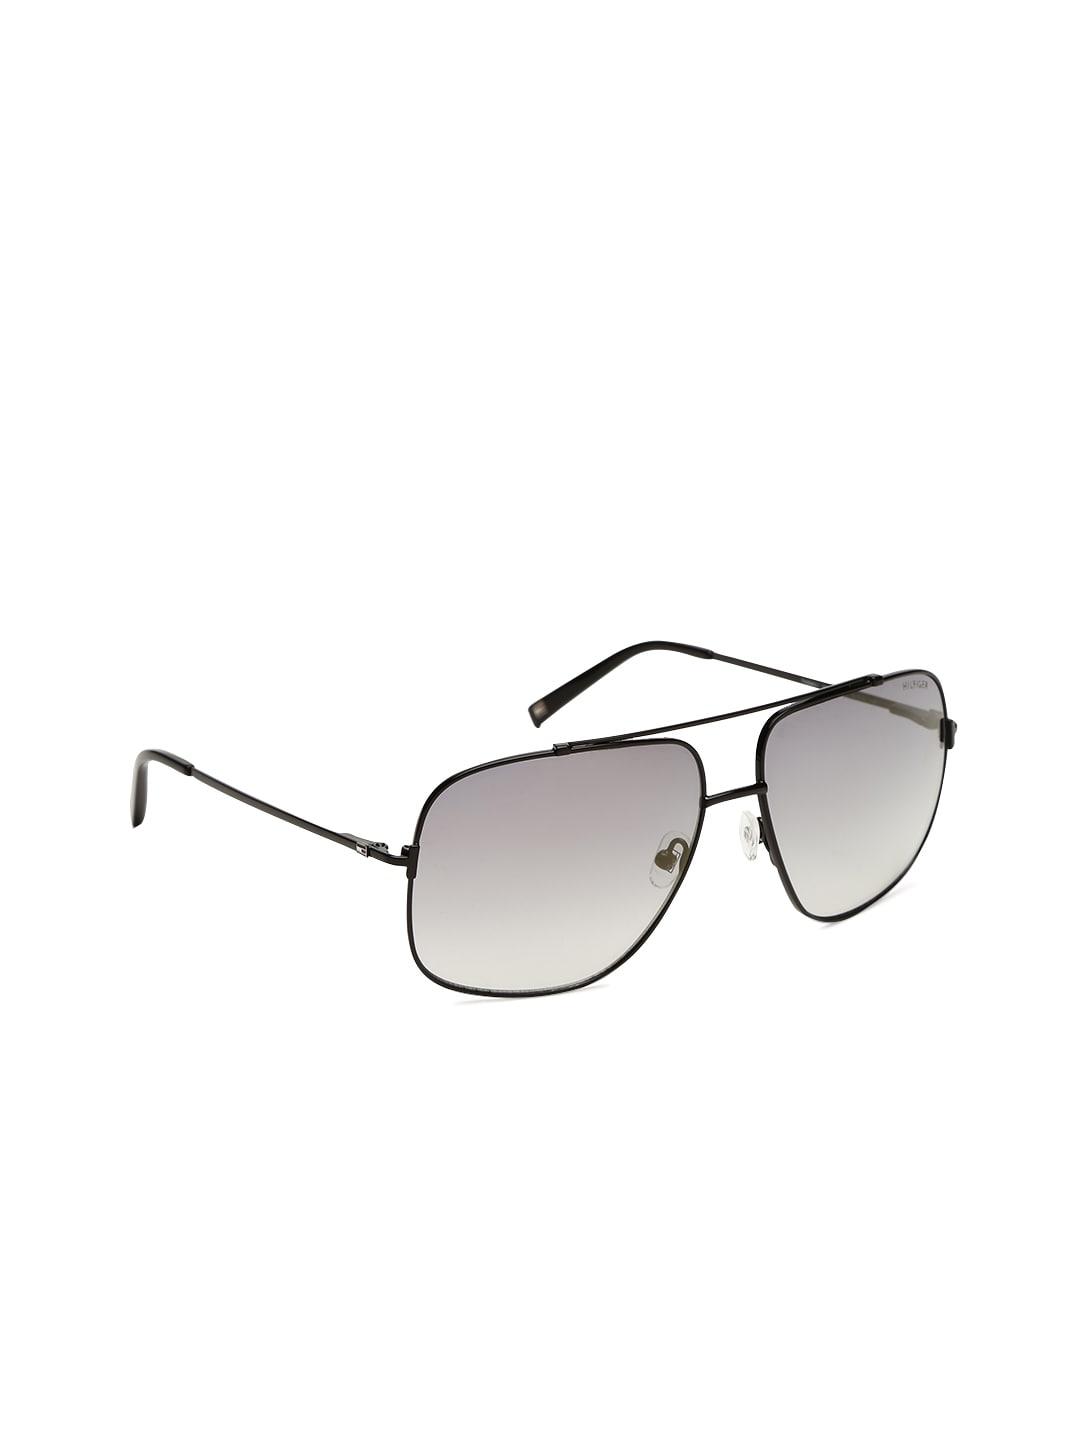 3dca239a38 Aviator - Buy Aviator Sunglasses Online at Best Price